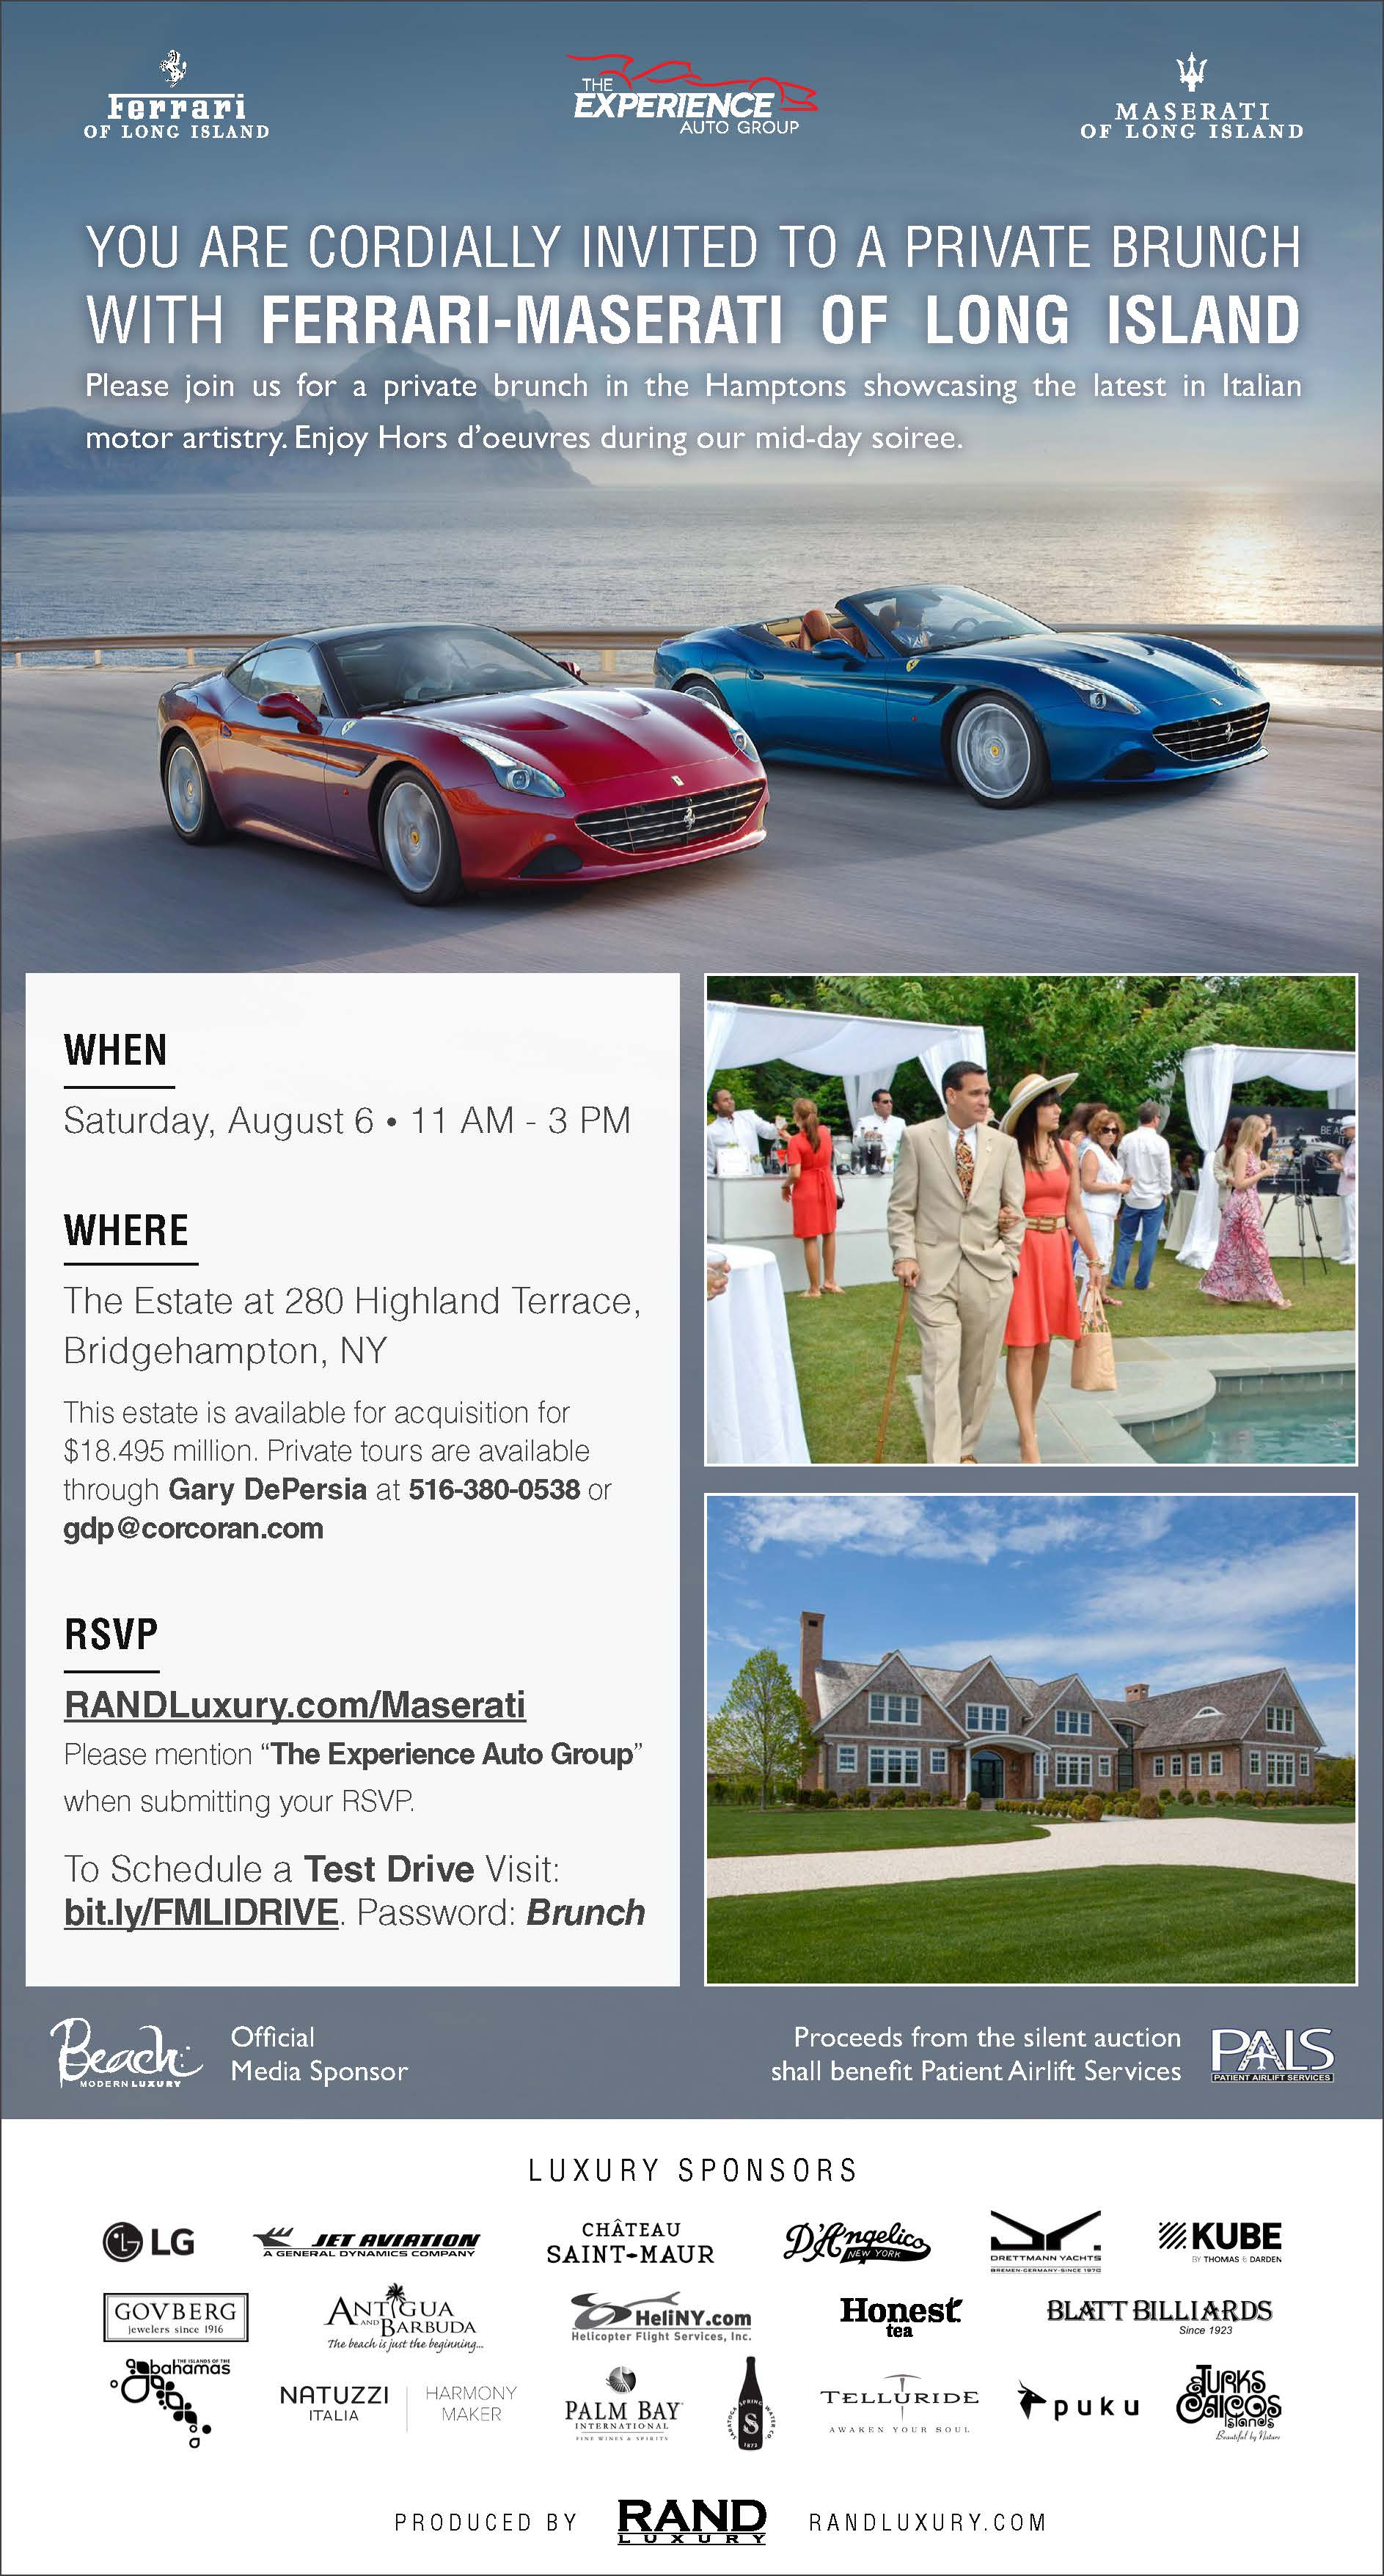 ferrari of long island | you are invited to a private lunch with